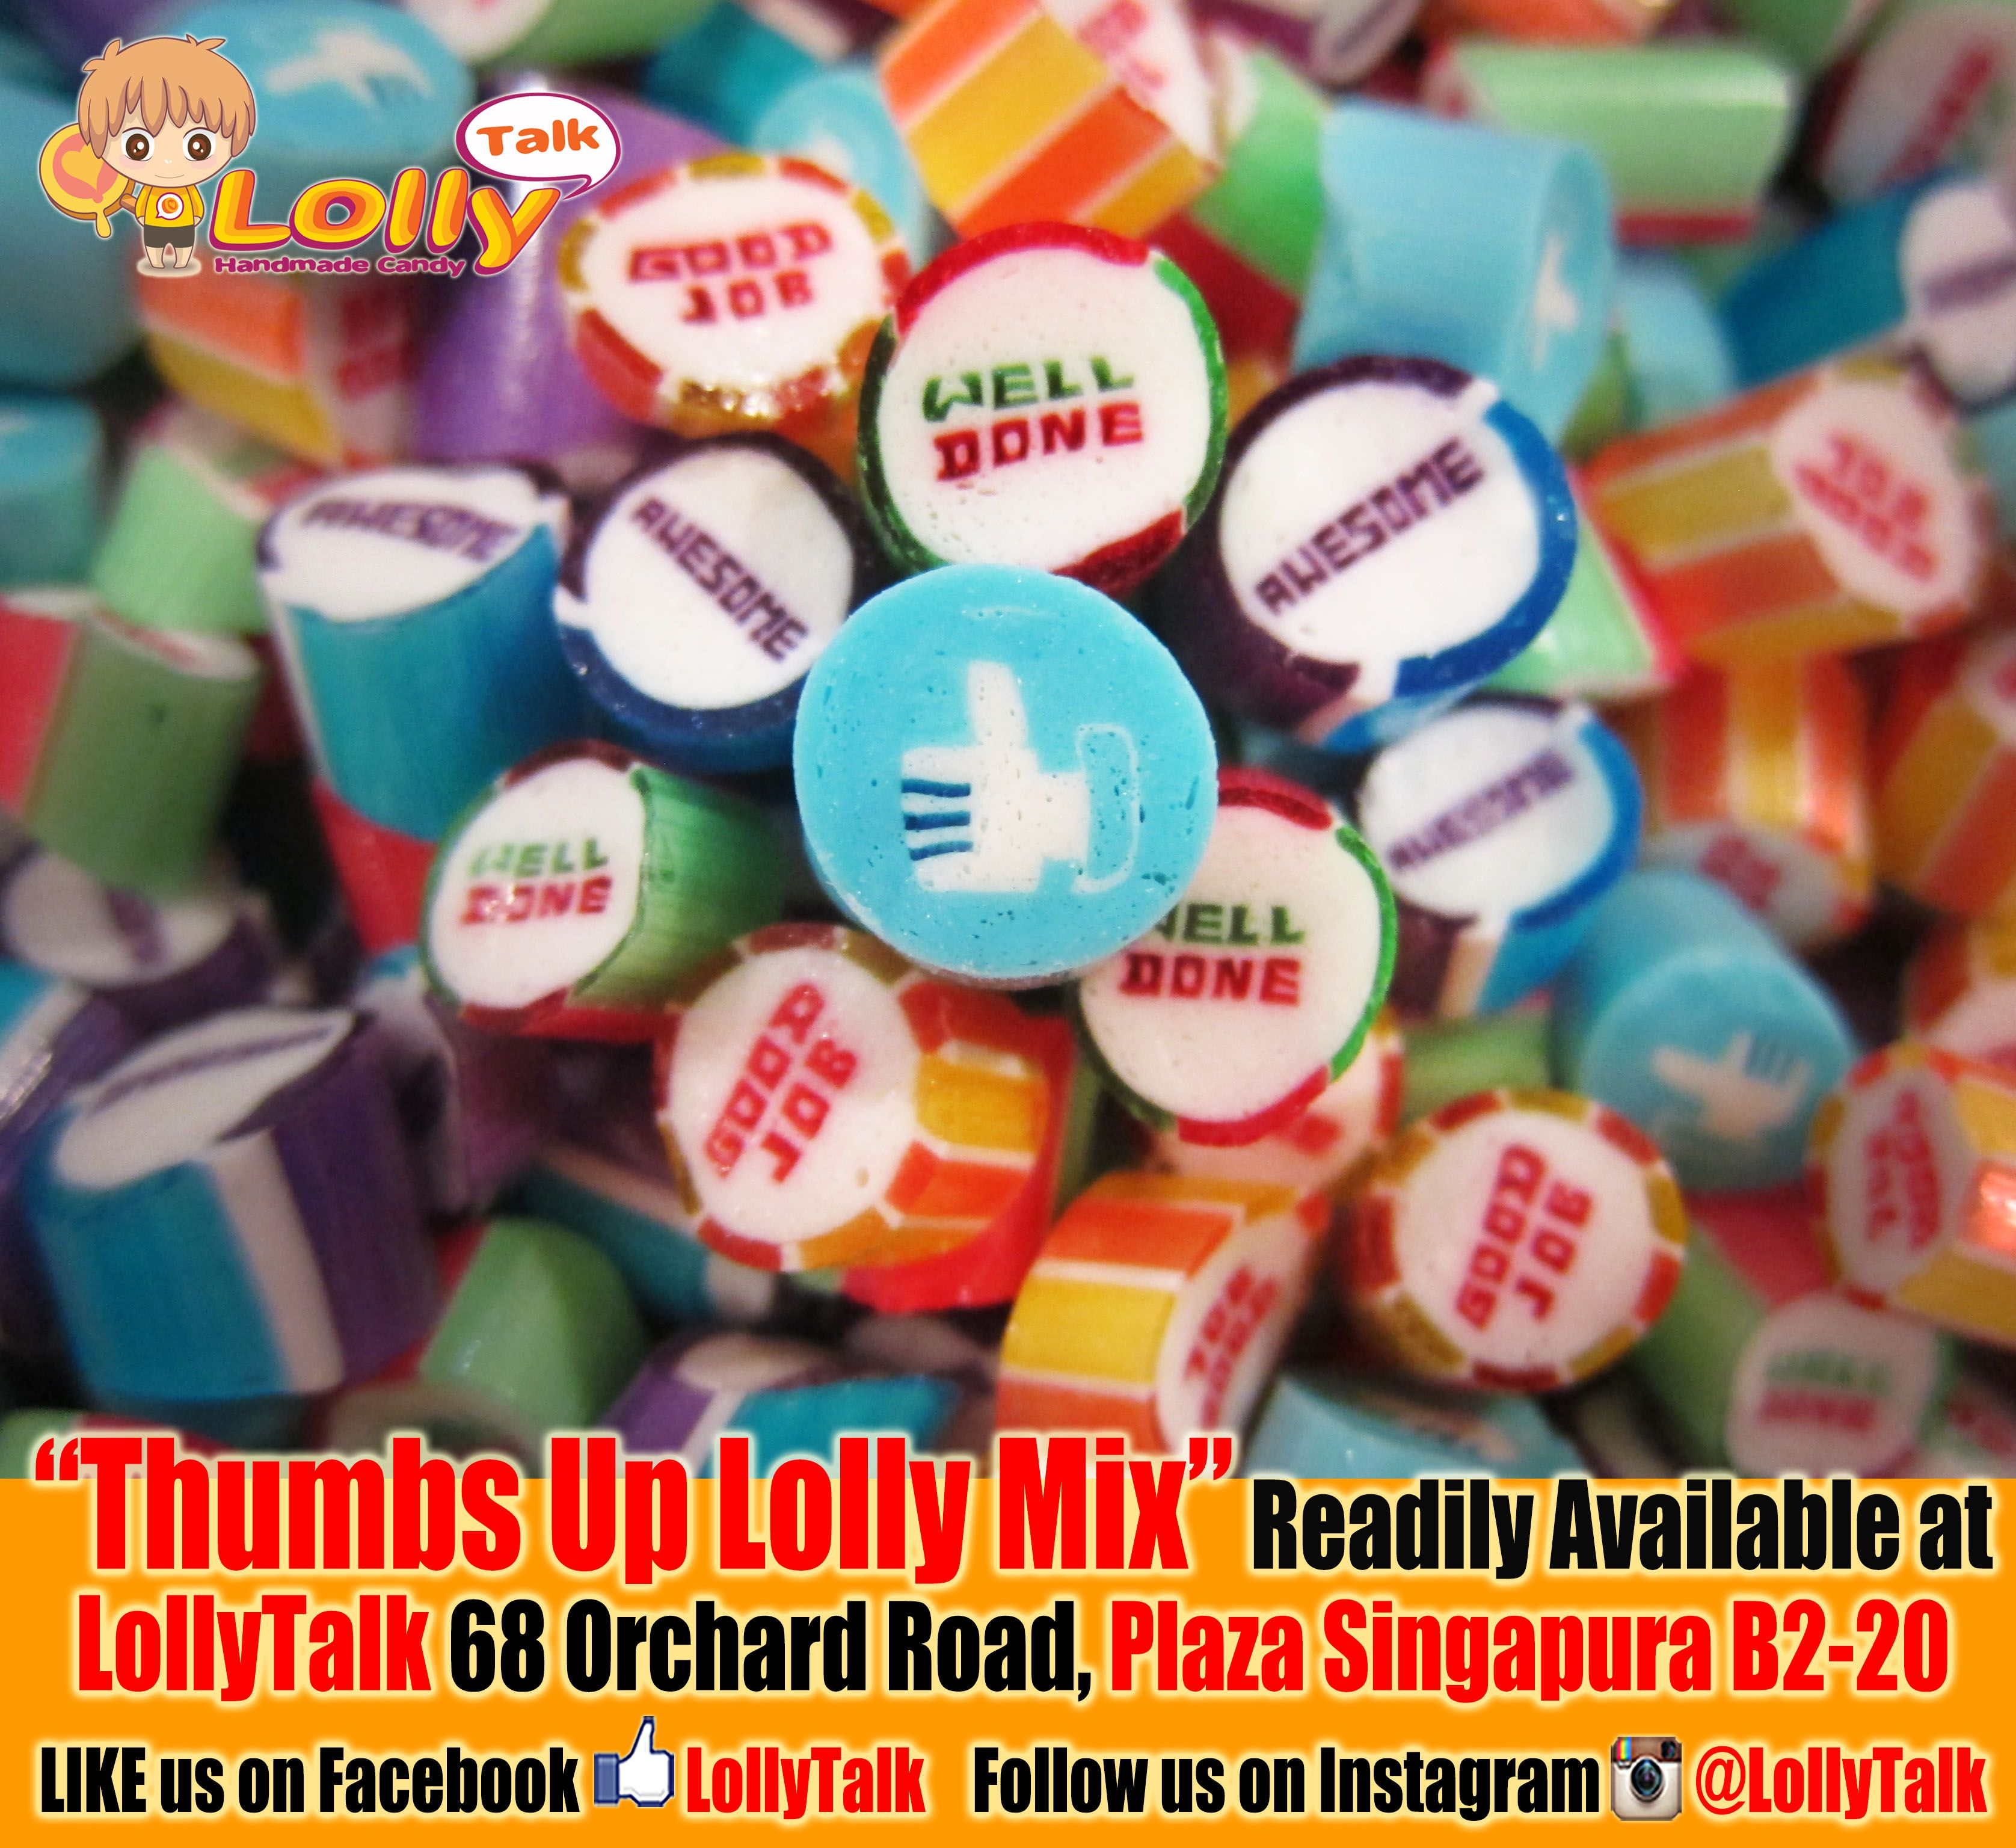 #thumbsup #welldone #goodjob #awesome #LollyTalk #handmade #candy #lollies